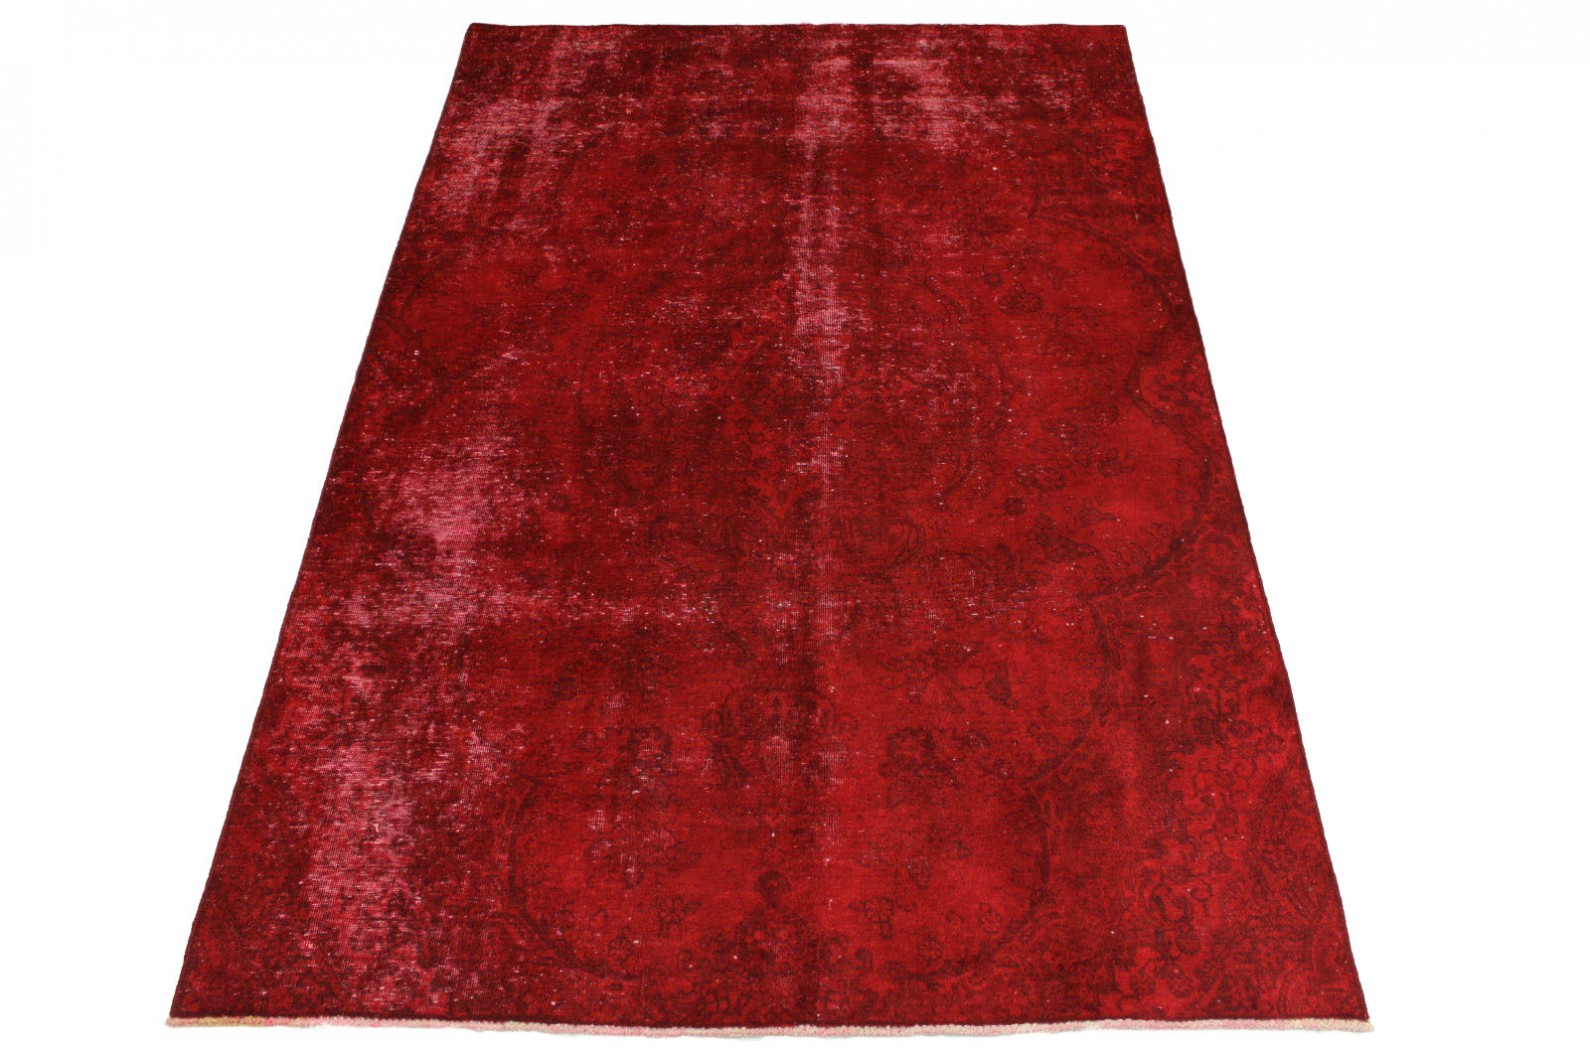 Vintage Teppich Rot in 270x170cm (1 / 5)